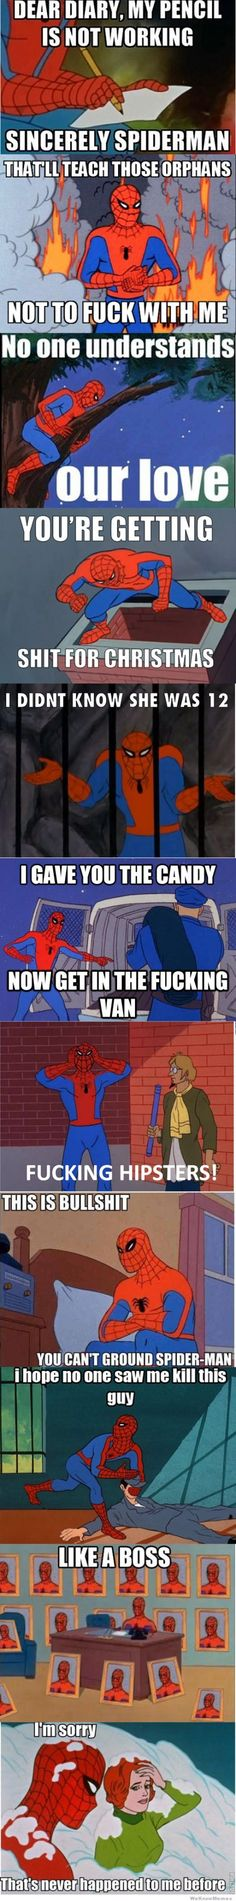 I love 60s spiderman jokes.